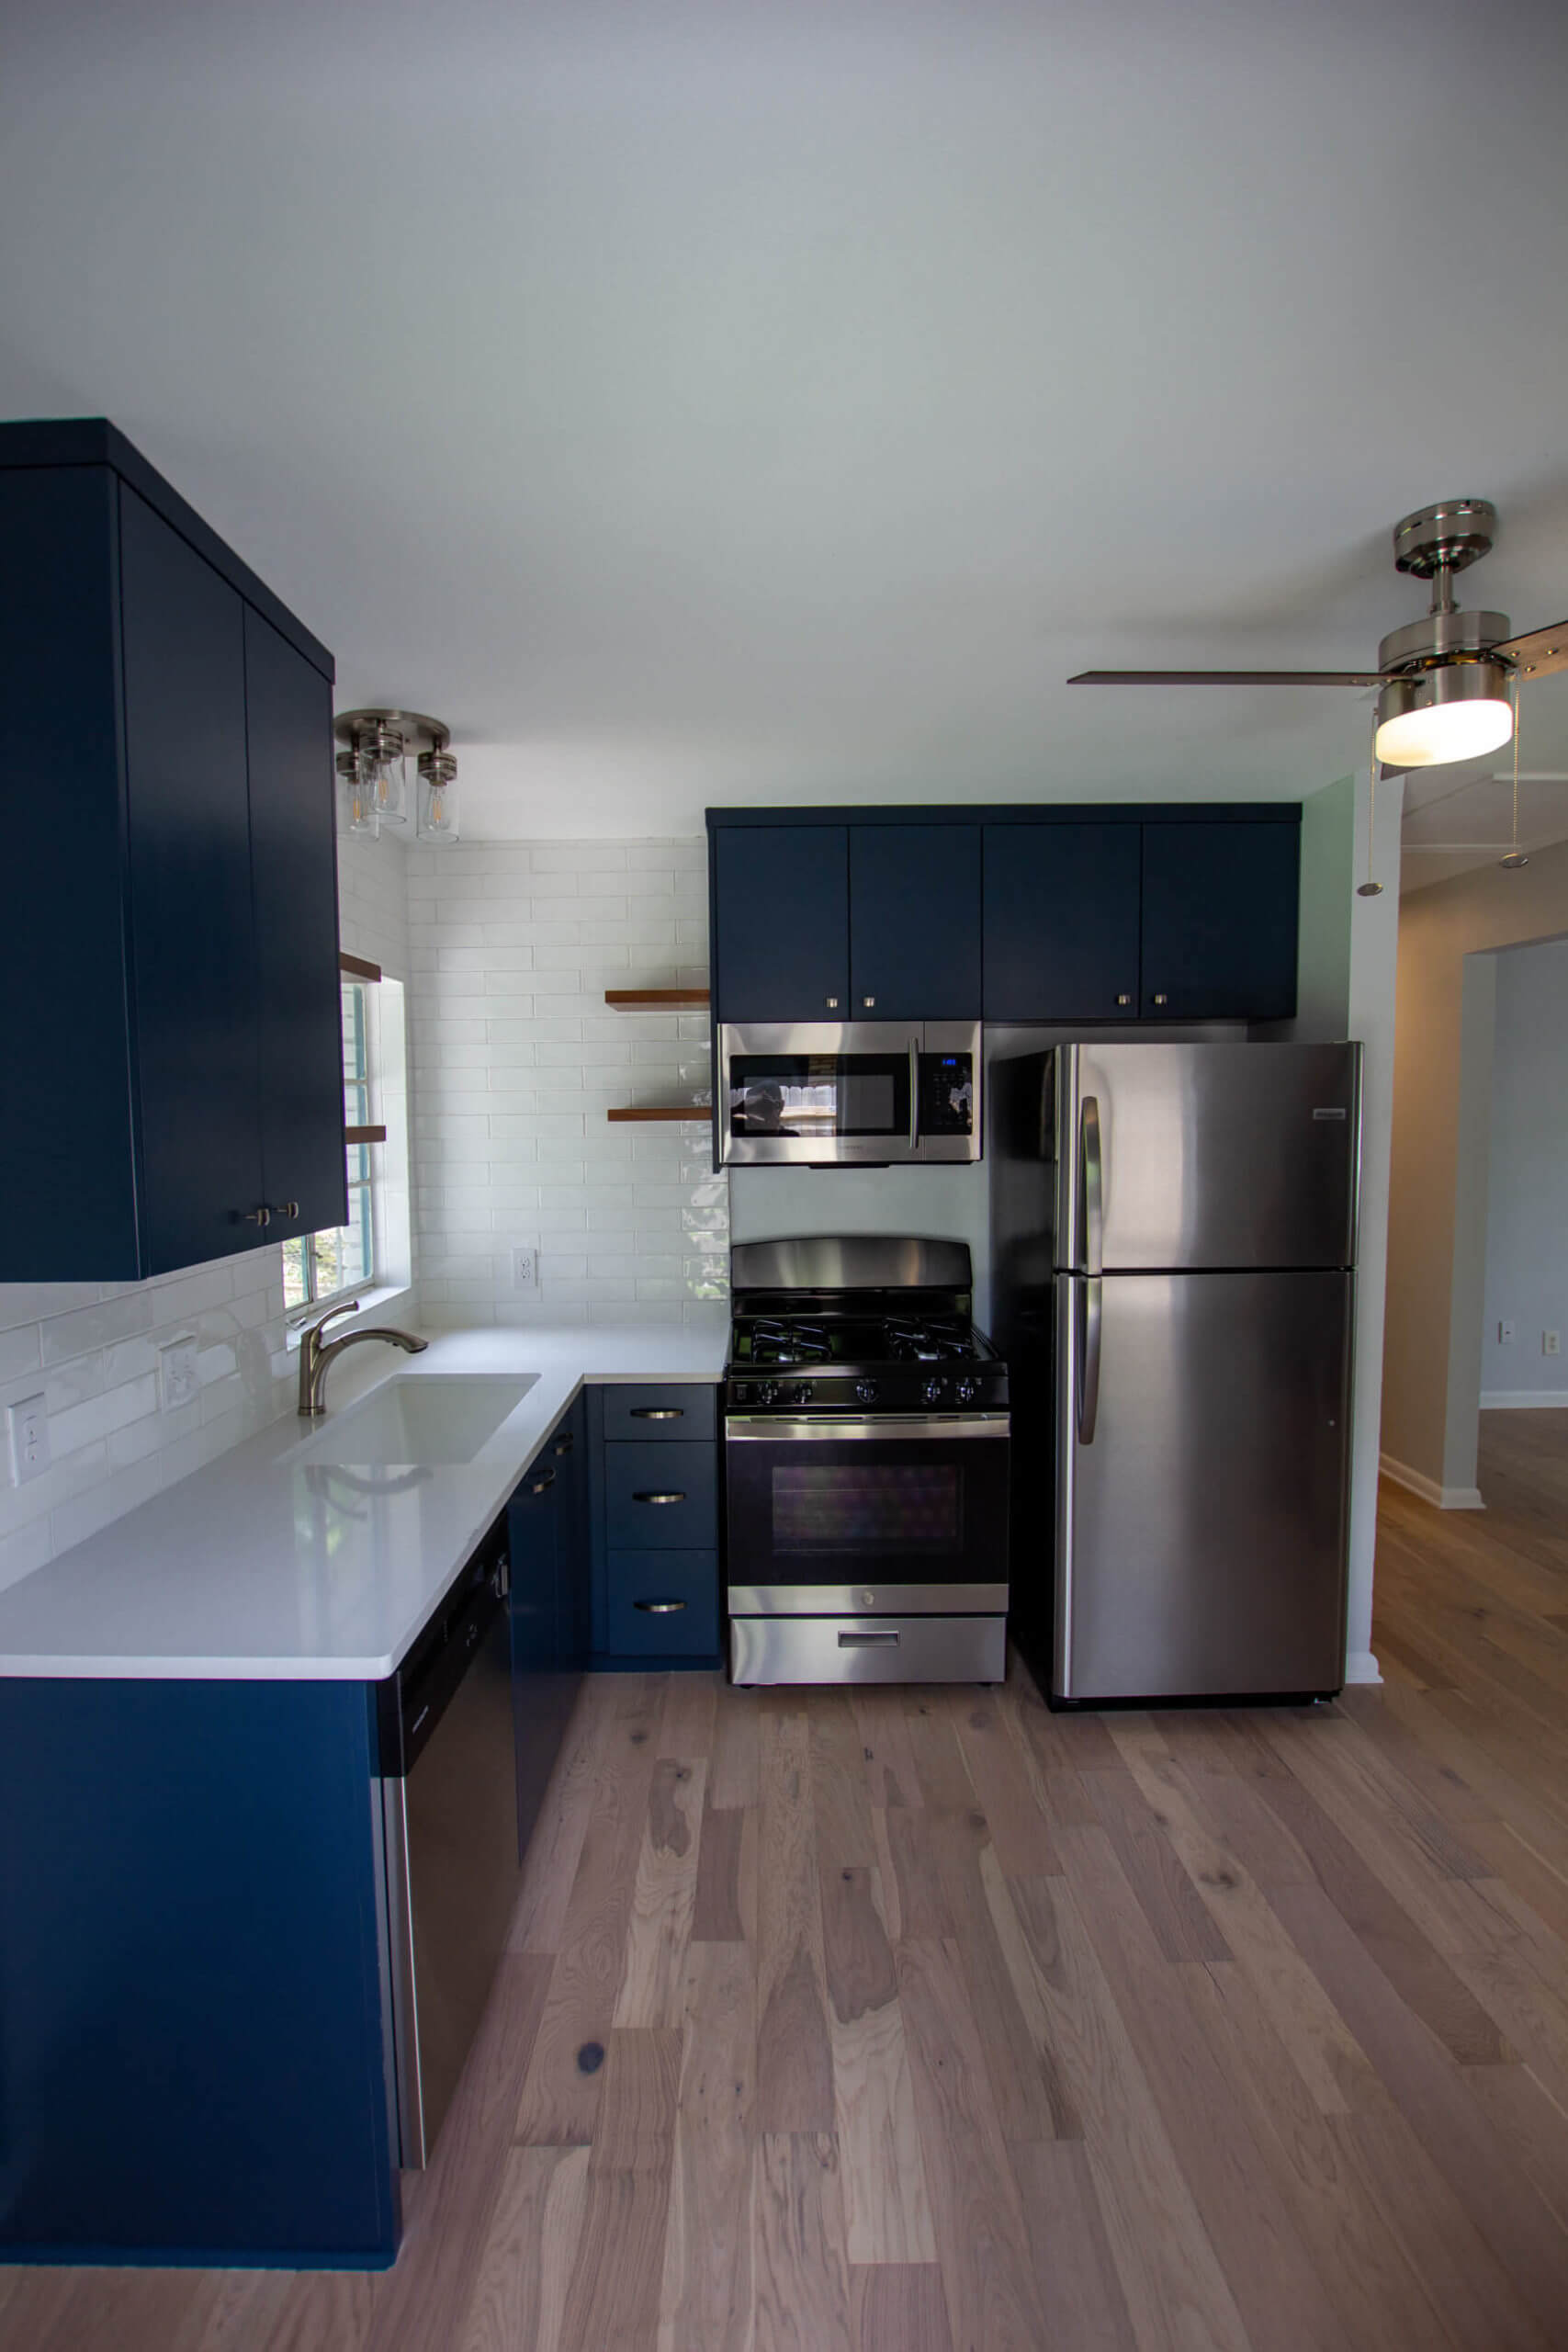 Remodeled modern kitchen with blue cabinets and stainless steel appliances.